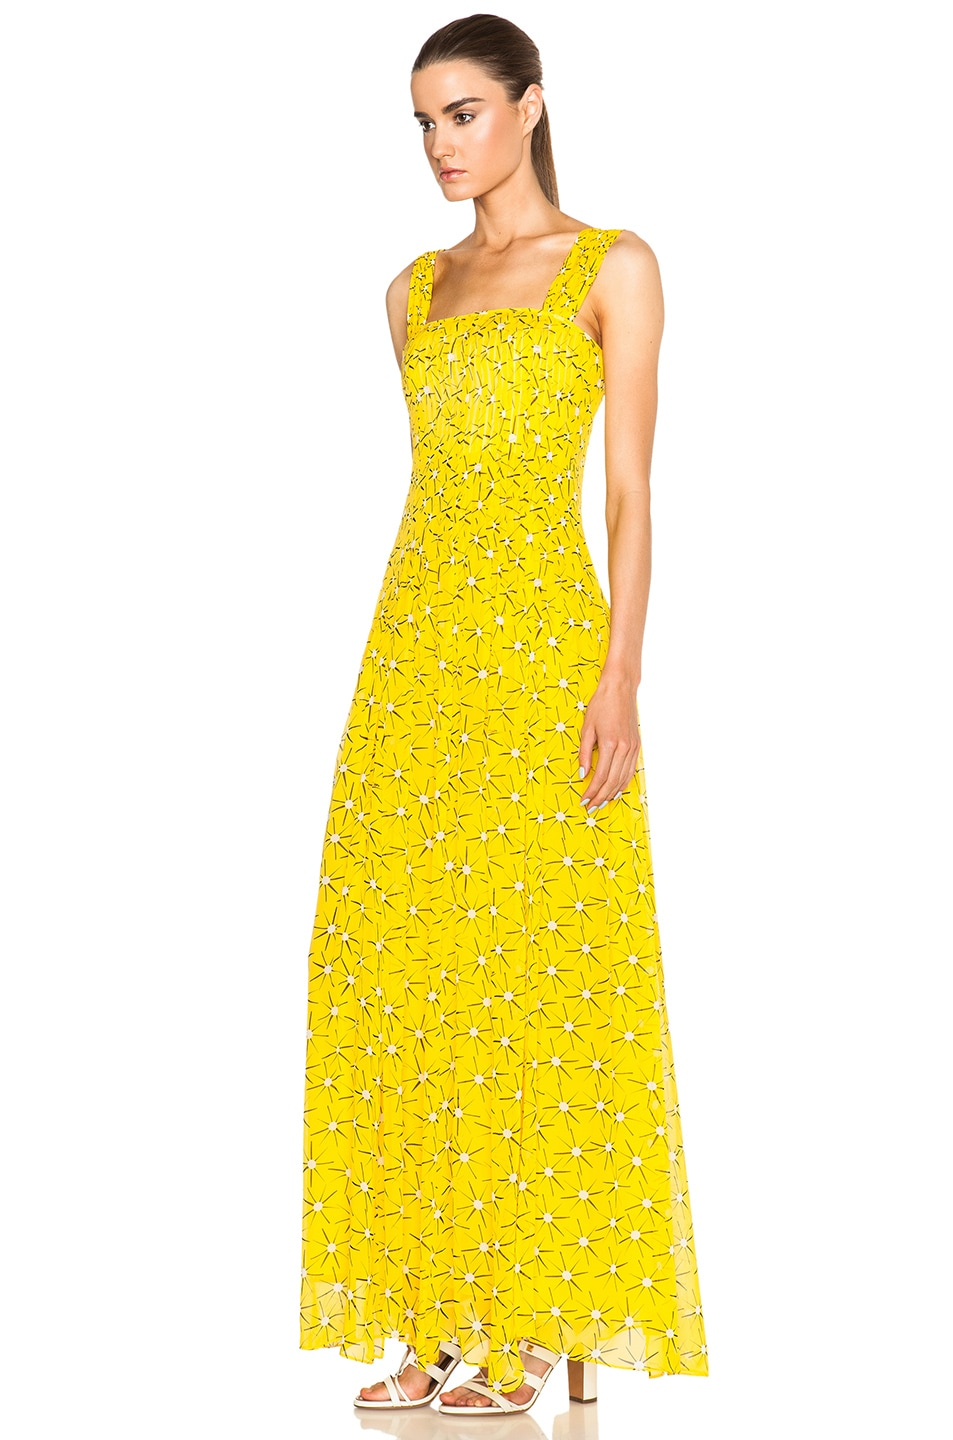 Image 2 Of Diane Von Furstenberg Lillie Chiffon Dress In Sunlight Yellow